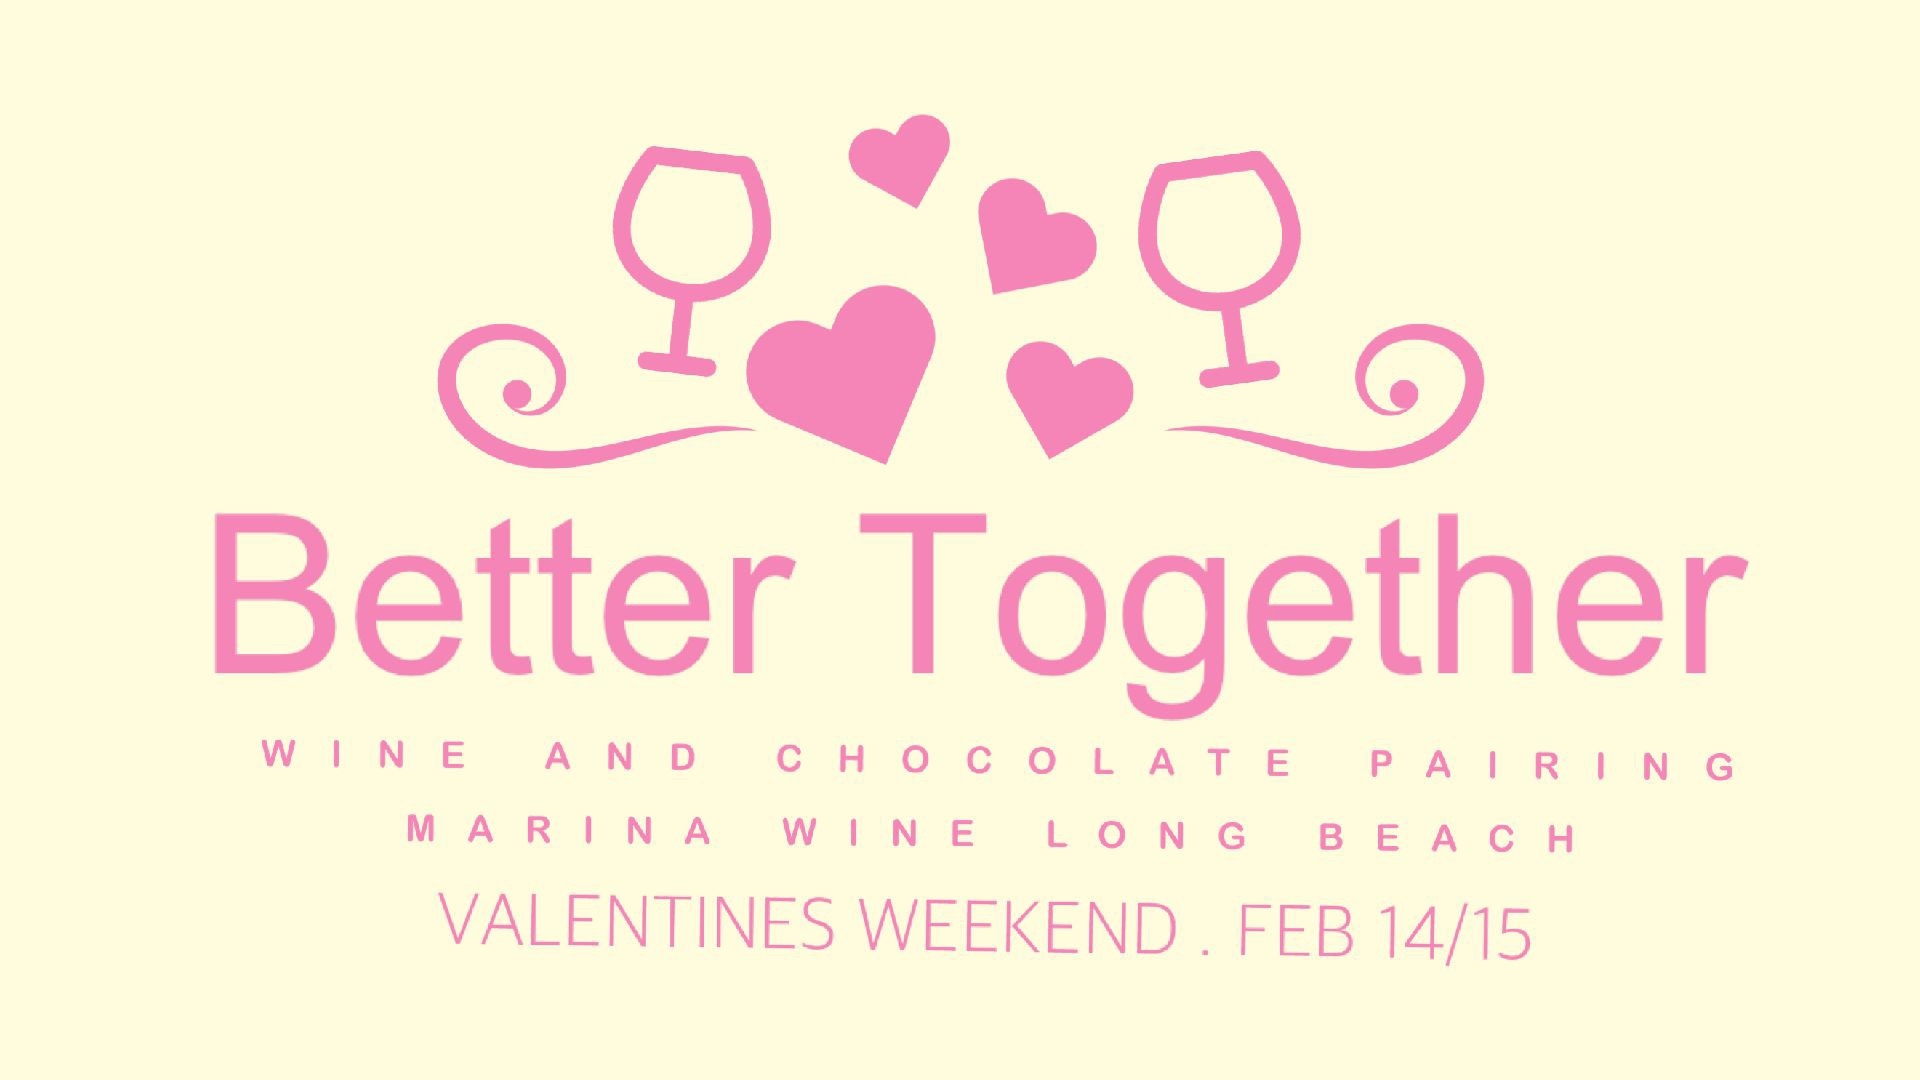 Better Together Valentines Pairings